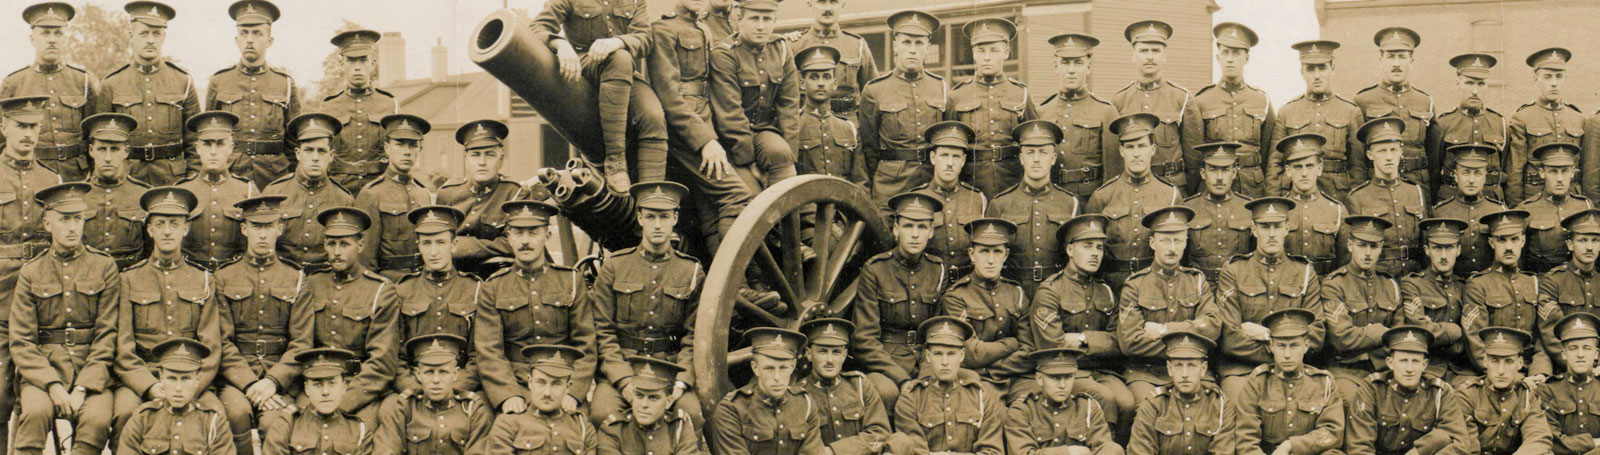 Battalion photograph. Men are lined up like in school or class photographs - some are sat on large artillery.